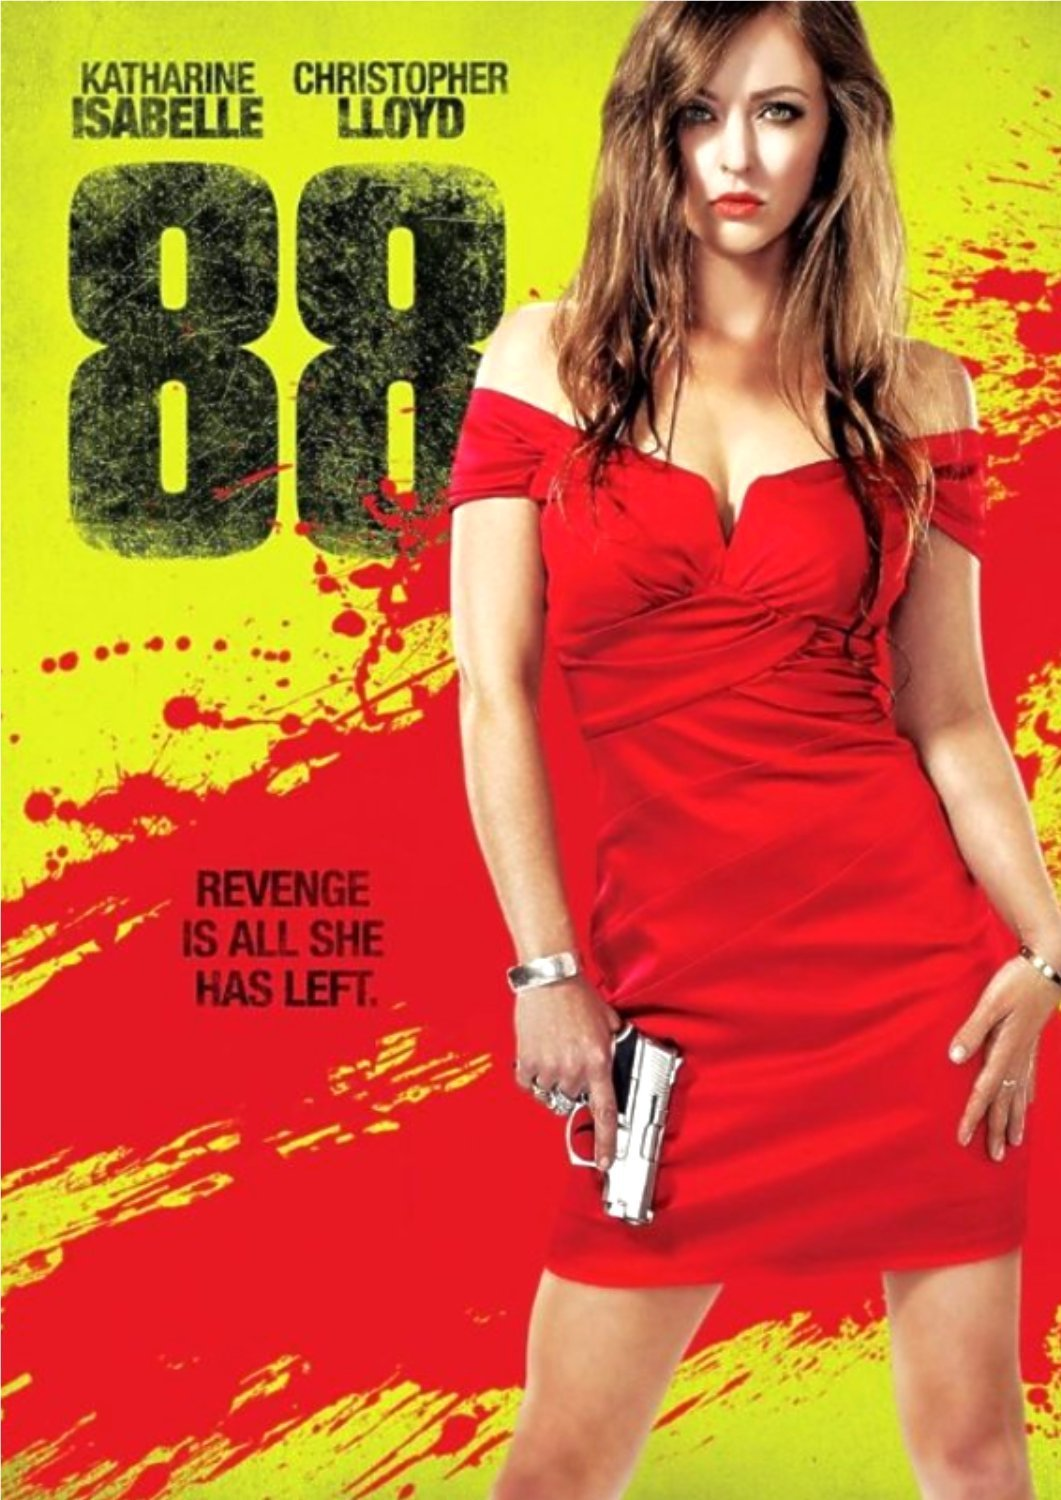 88 – Eighty-Eight (2014)